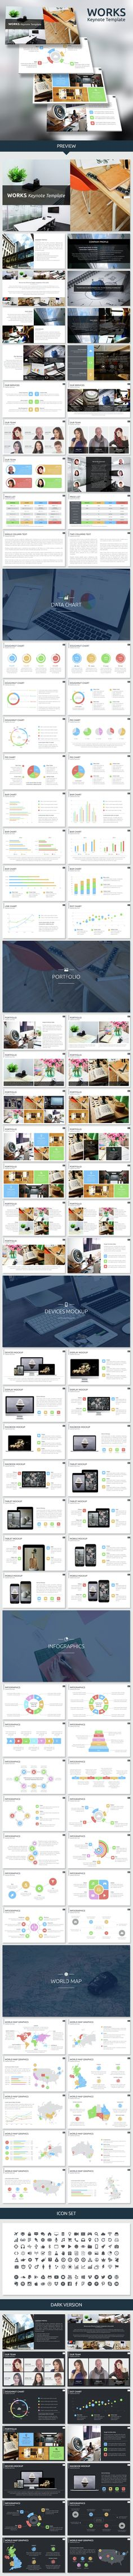 Works Keynote Template. Download here: http://graphicriver.net/item/works-keynote-template/14824611?ref=ksioks